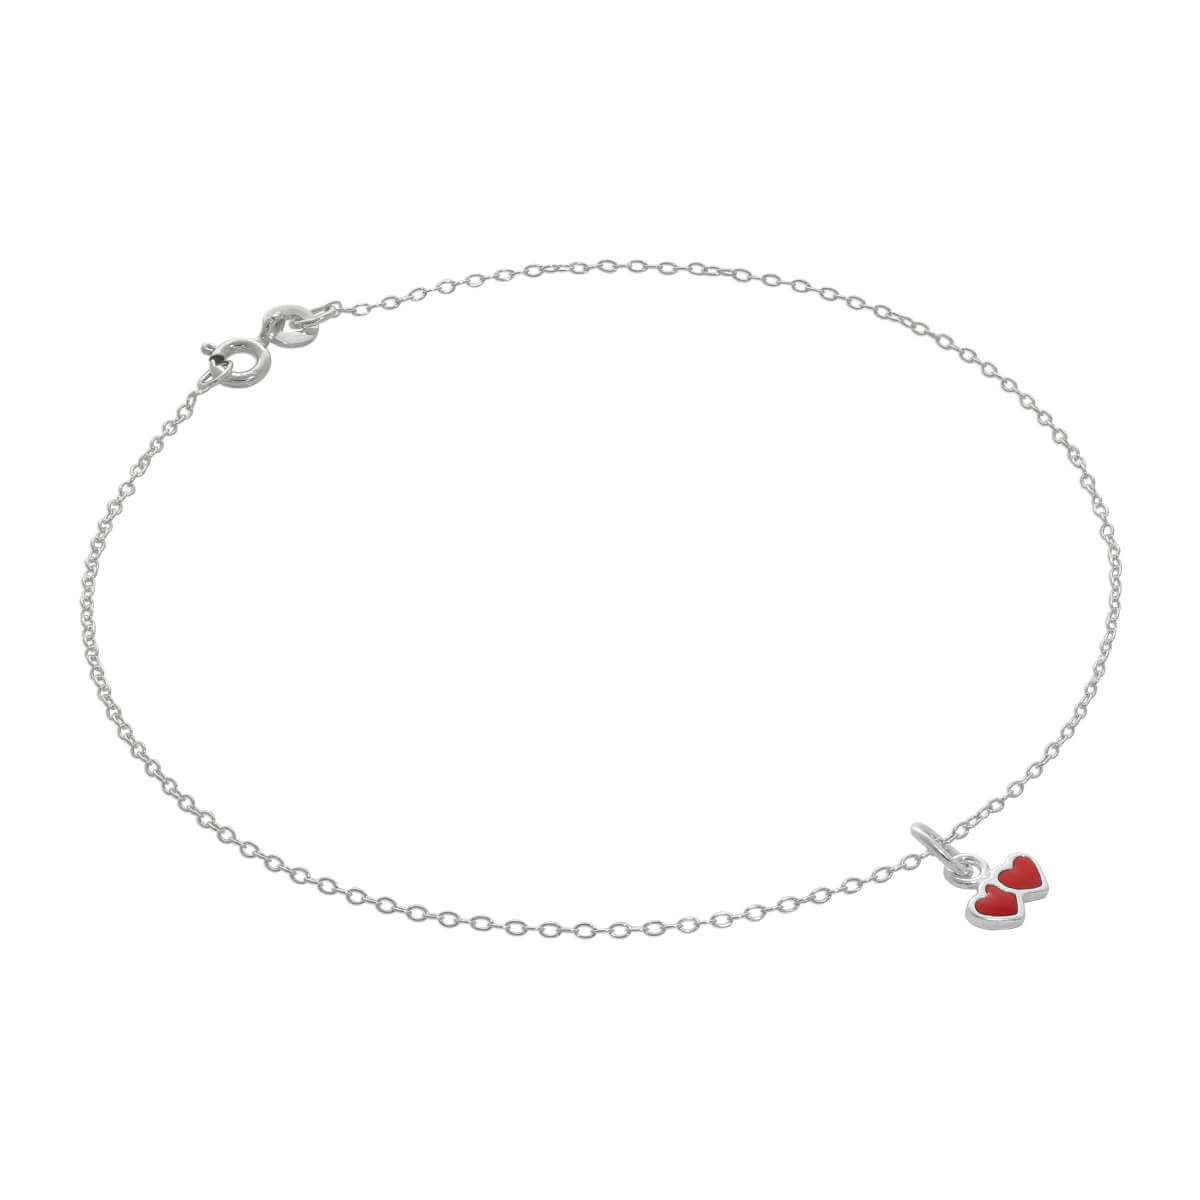 Fine Sterling Silver Belcher Anklet with Tiny Red Enamel Double Heart Charm